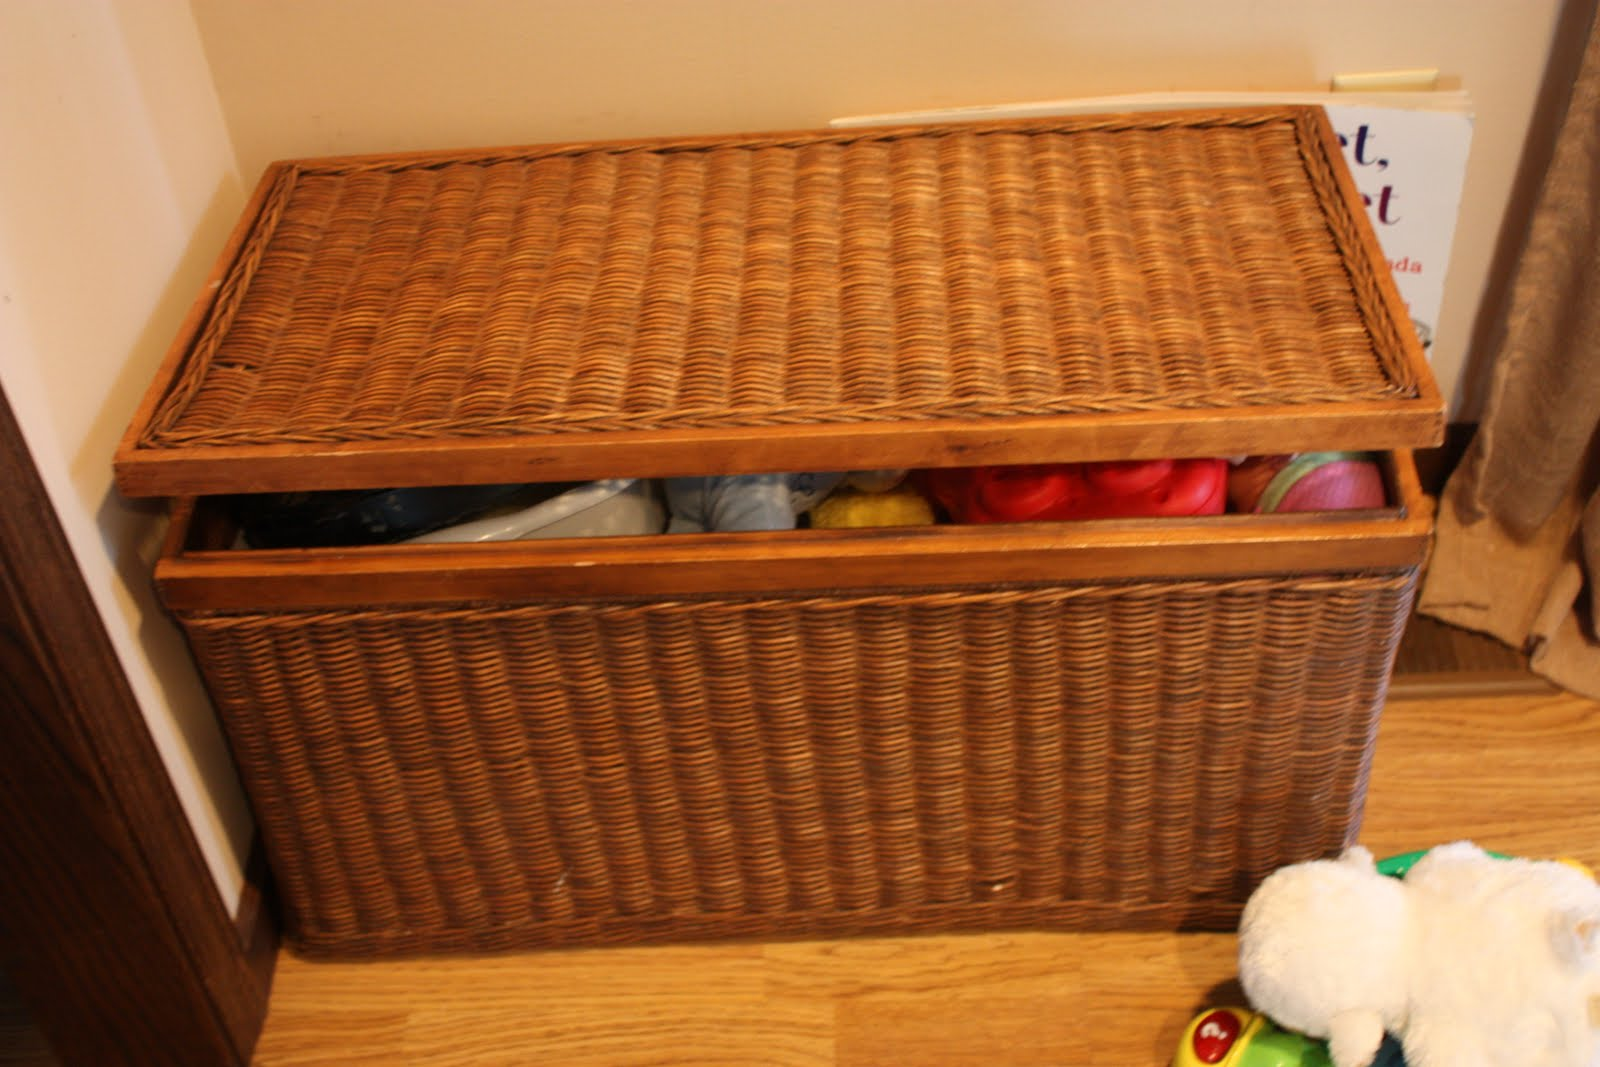 Toy Box Toys A Lesson Learned Locking Away The Toy Box I Can Teach My